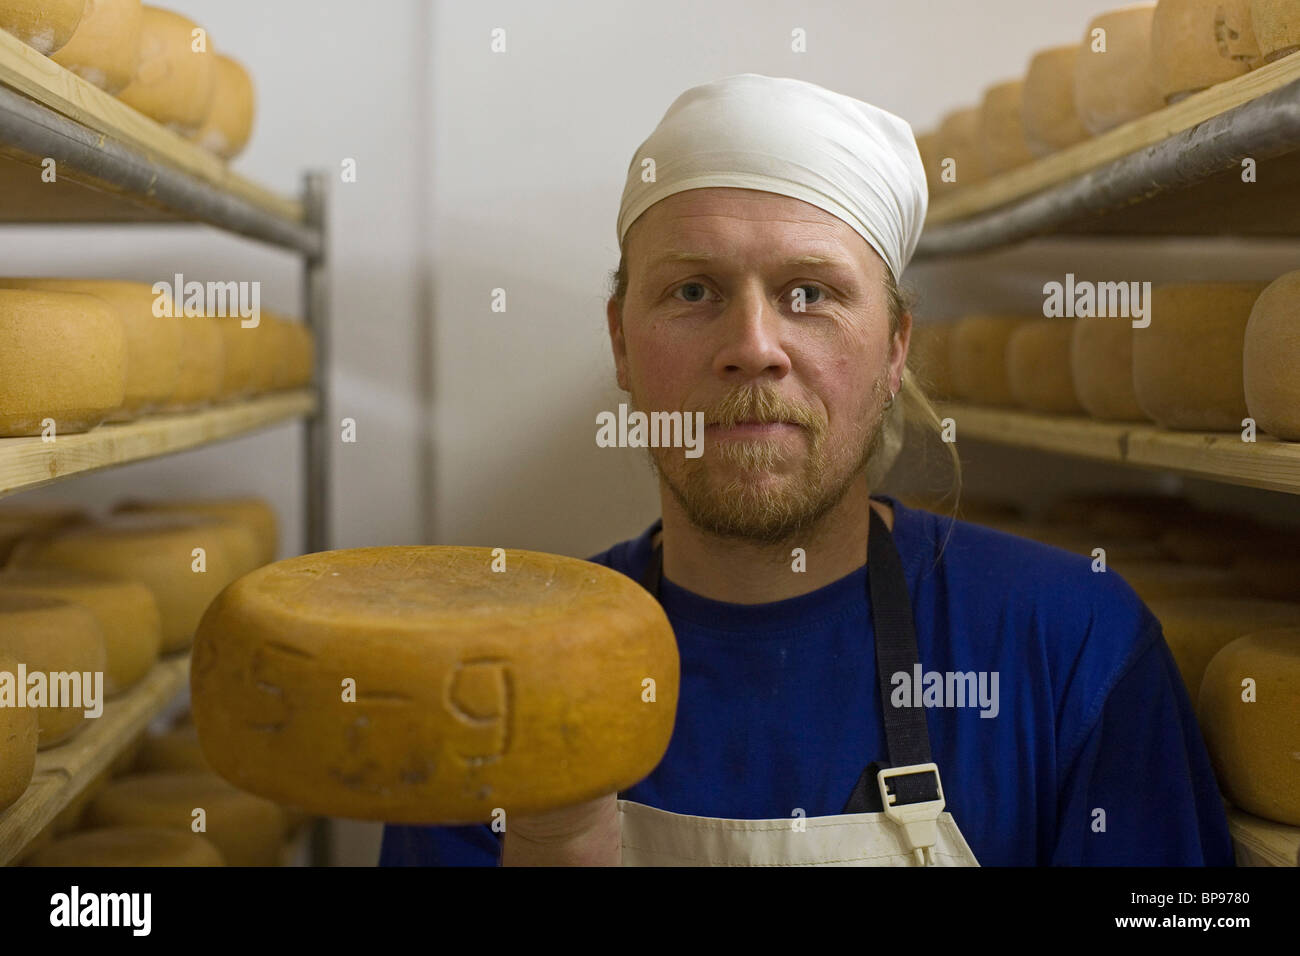 Olaf, cheese production, Adolphshof near Lehrte, Hannover, Lower Saxony, Germany - Stock Image